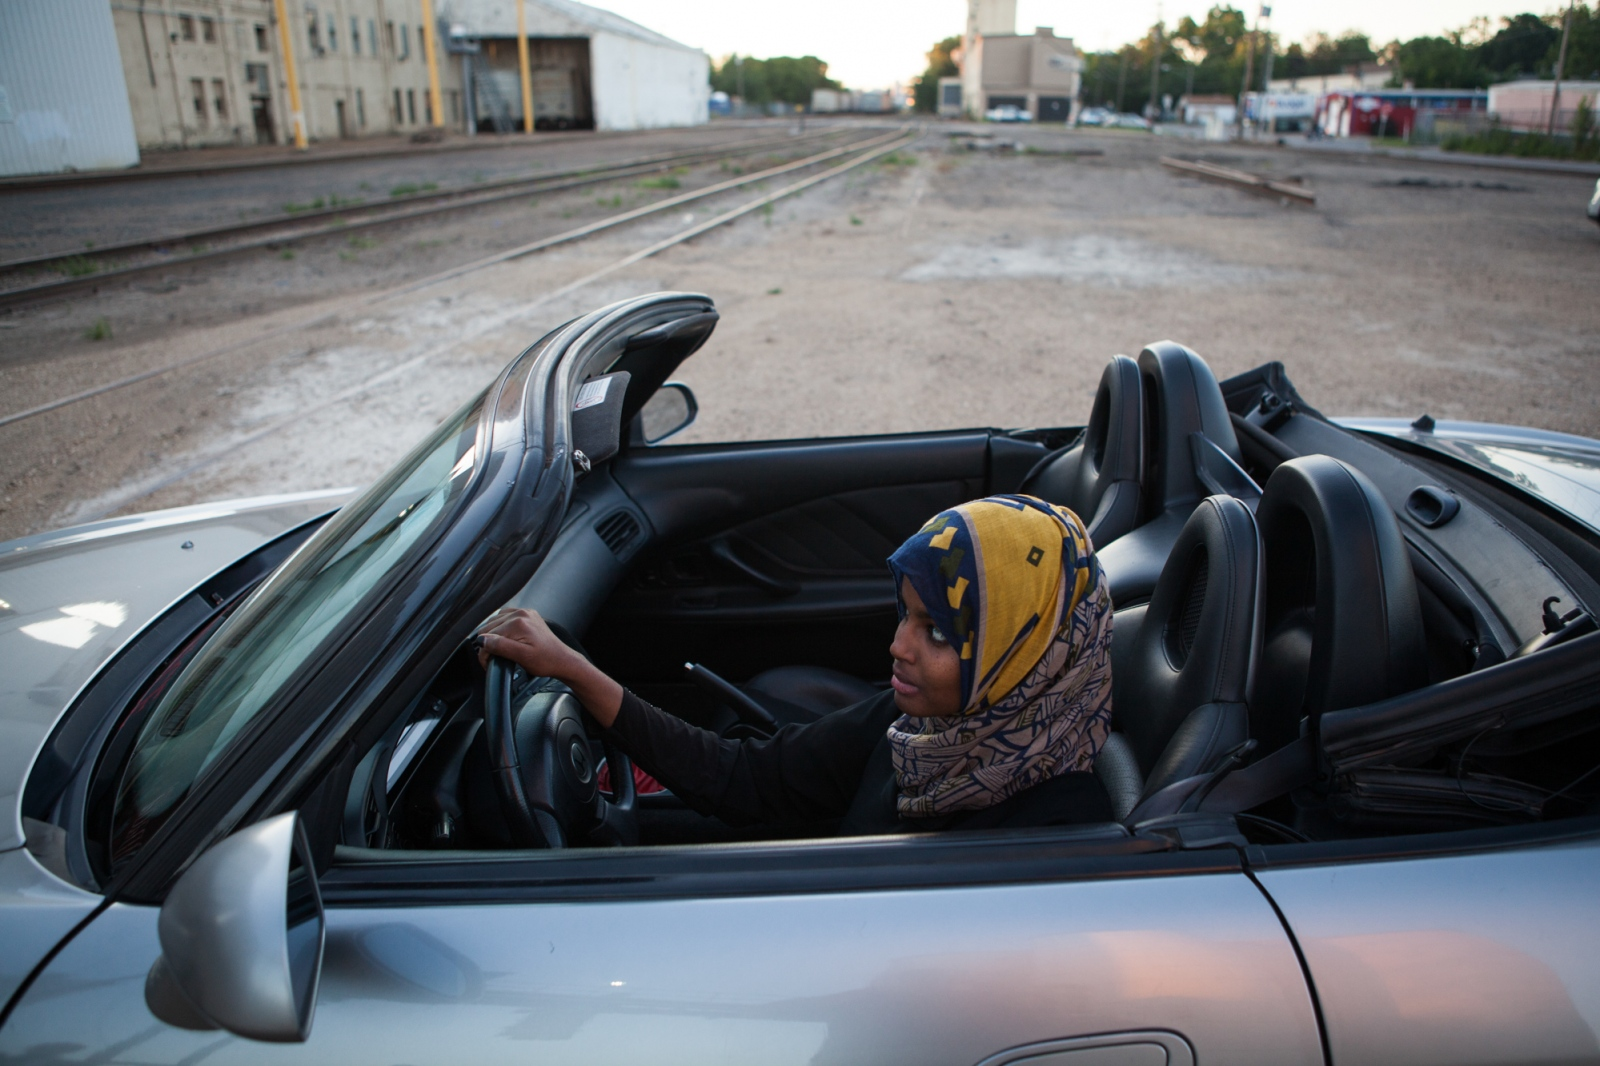 Fartun Mahamoud Abdi looks at herself in the mirror of her friend's convertible. Ms. Abdi sits on the controversial Countering Violent Extremism committee, which is a government-backed initiative meant to keep youth away from both radicalization and street crime through after-school outreach programs.